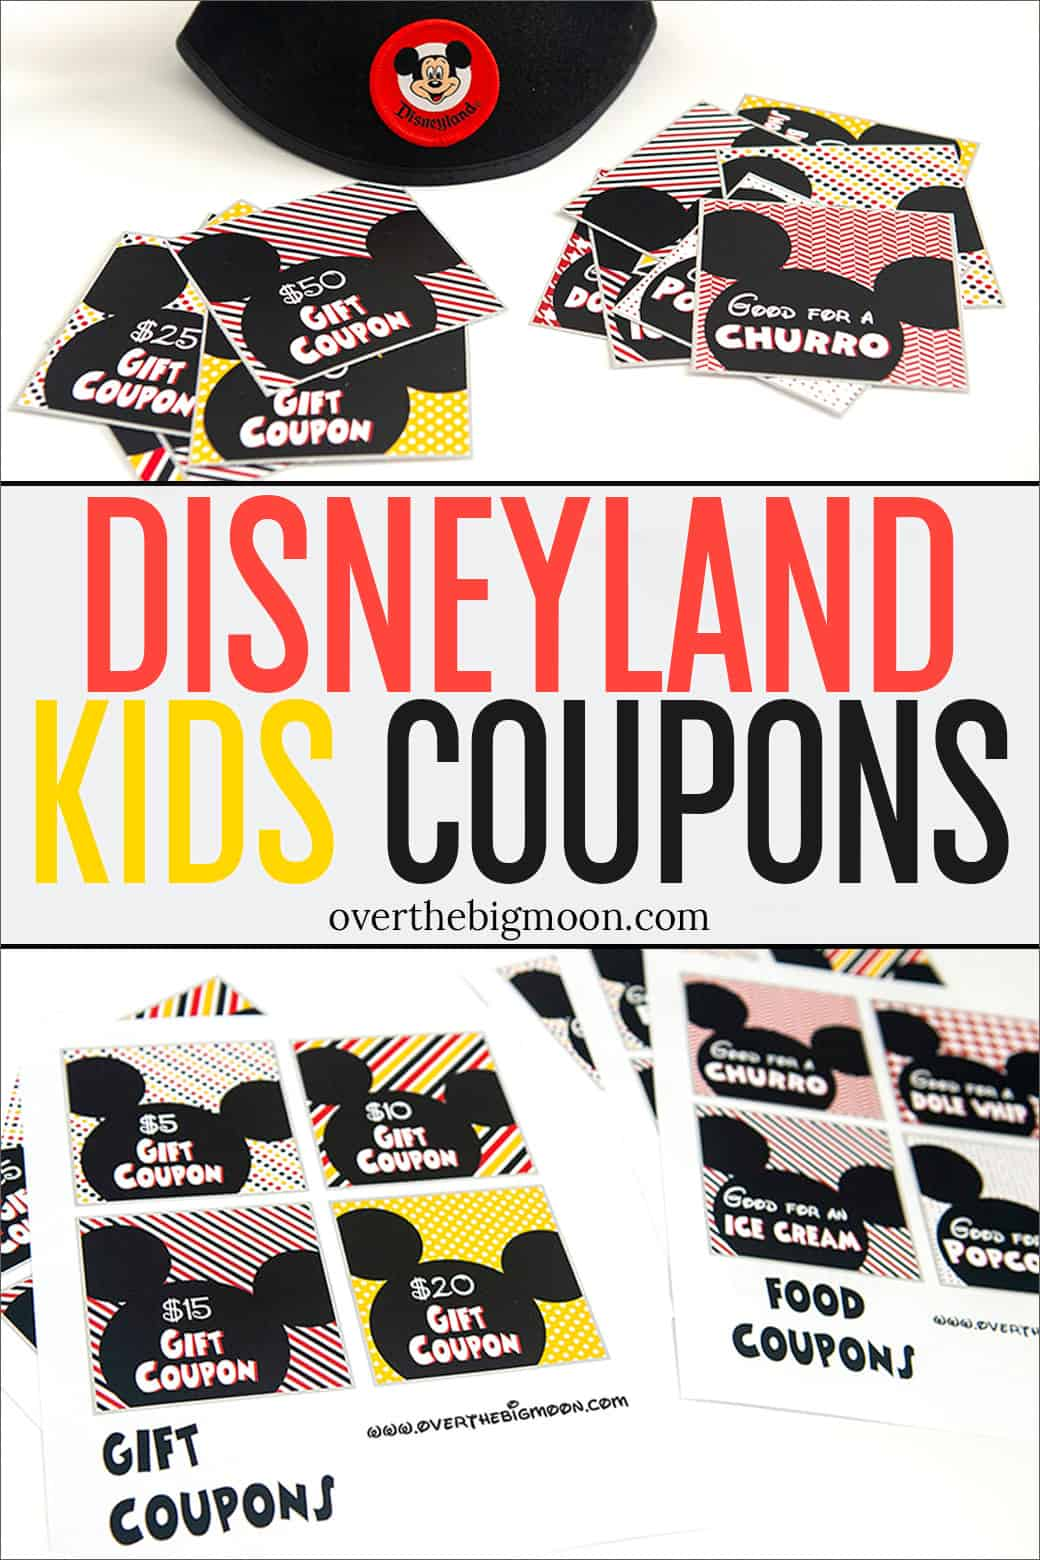 photo about Disneyland Printable Coupons identified as Disneyland Coupon Printables - About the Massive Moon